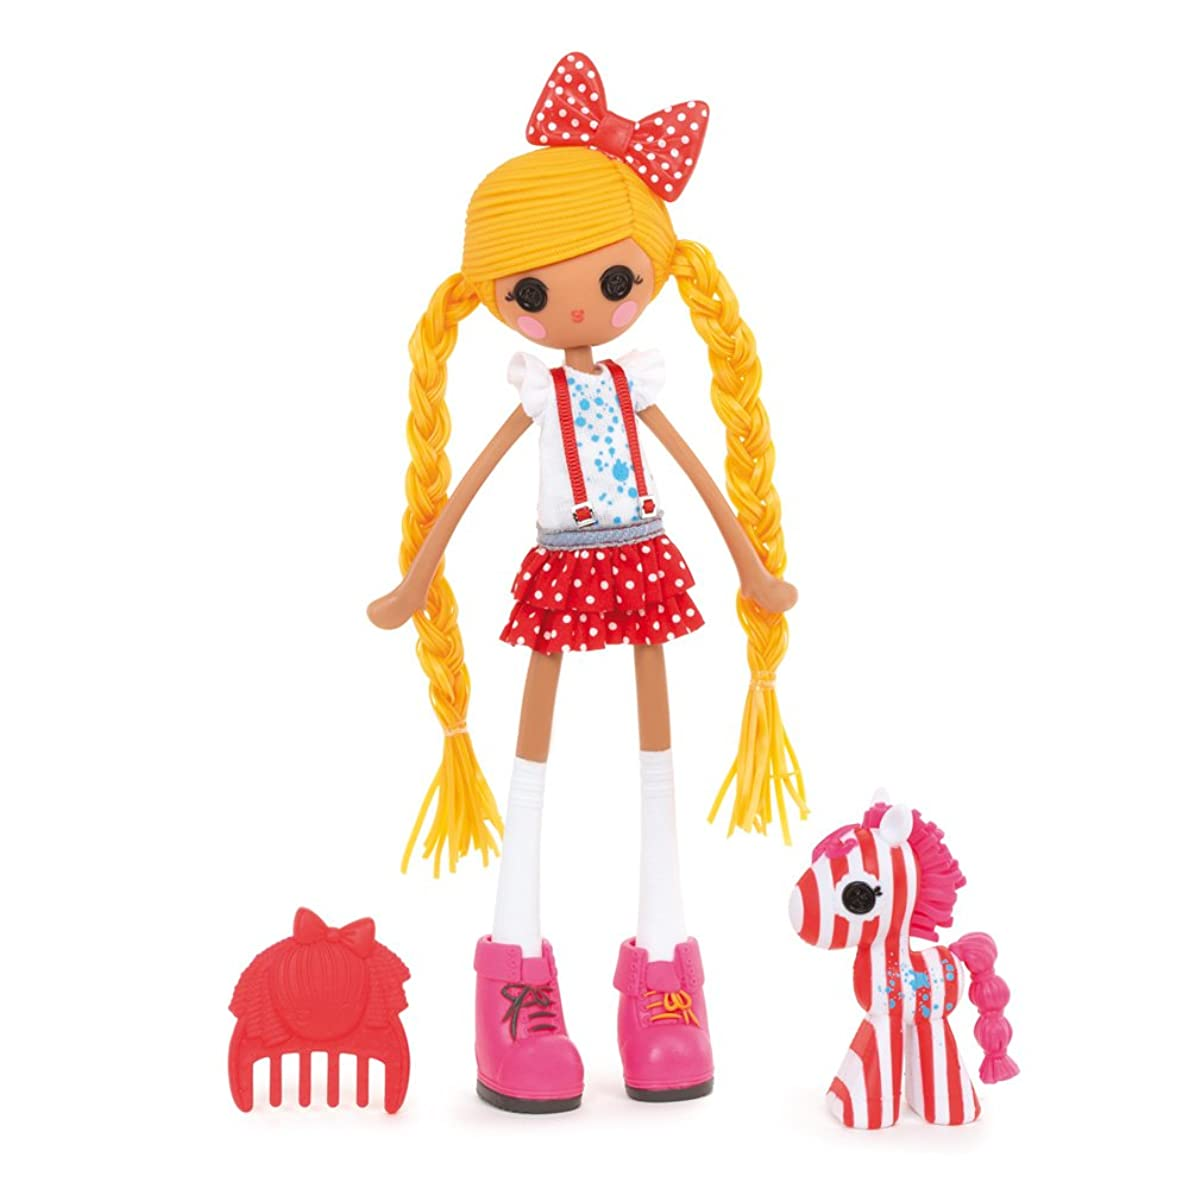 バージンフィードオントレーダーLalaloopsy Girls Spot Splatter Splash Doll